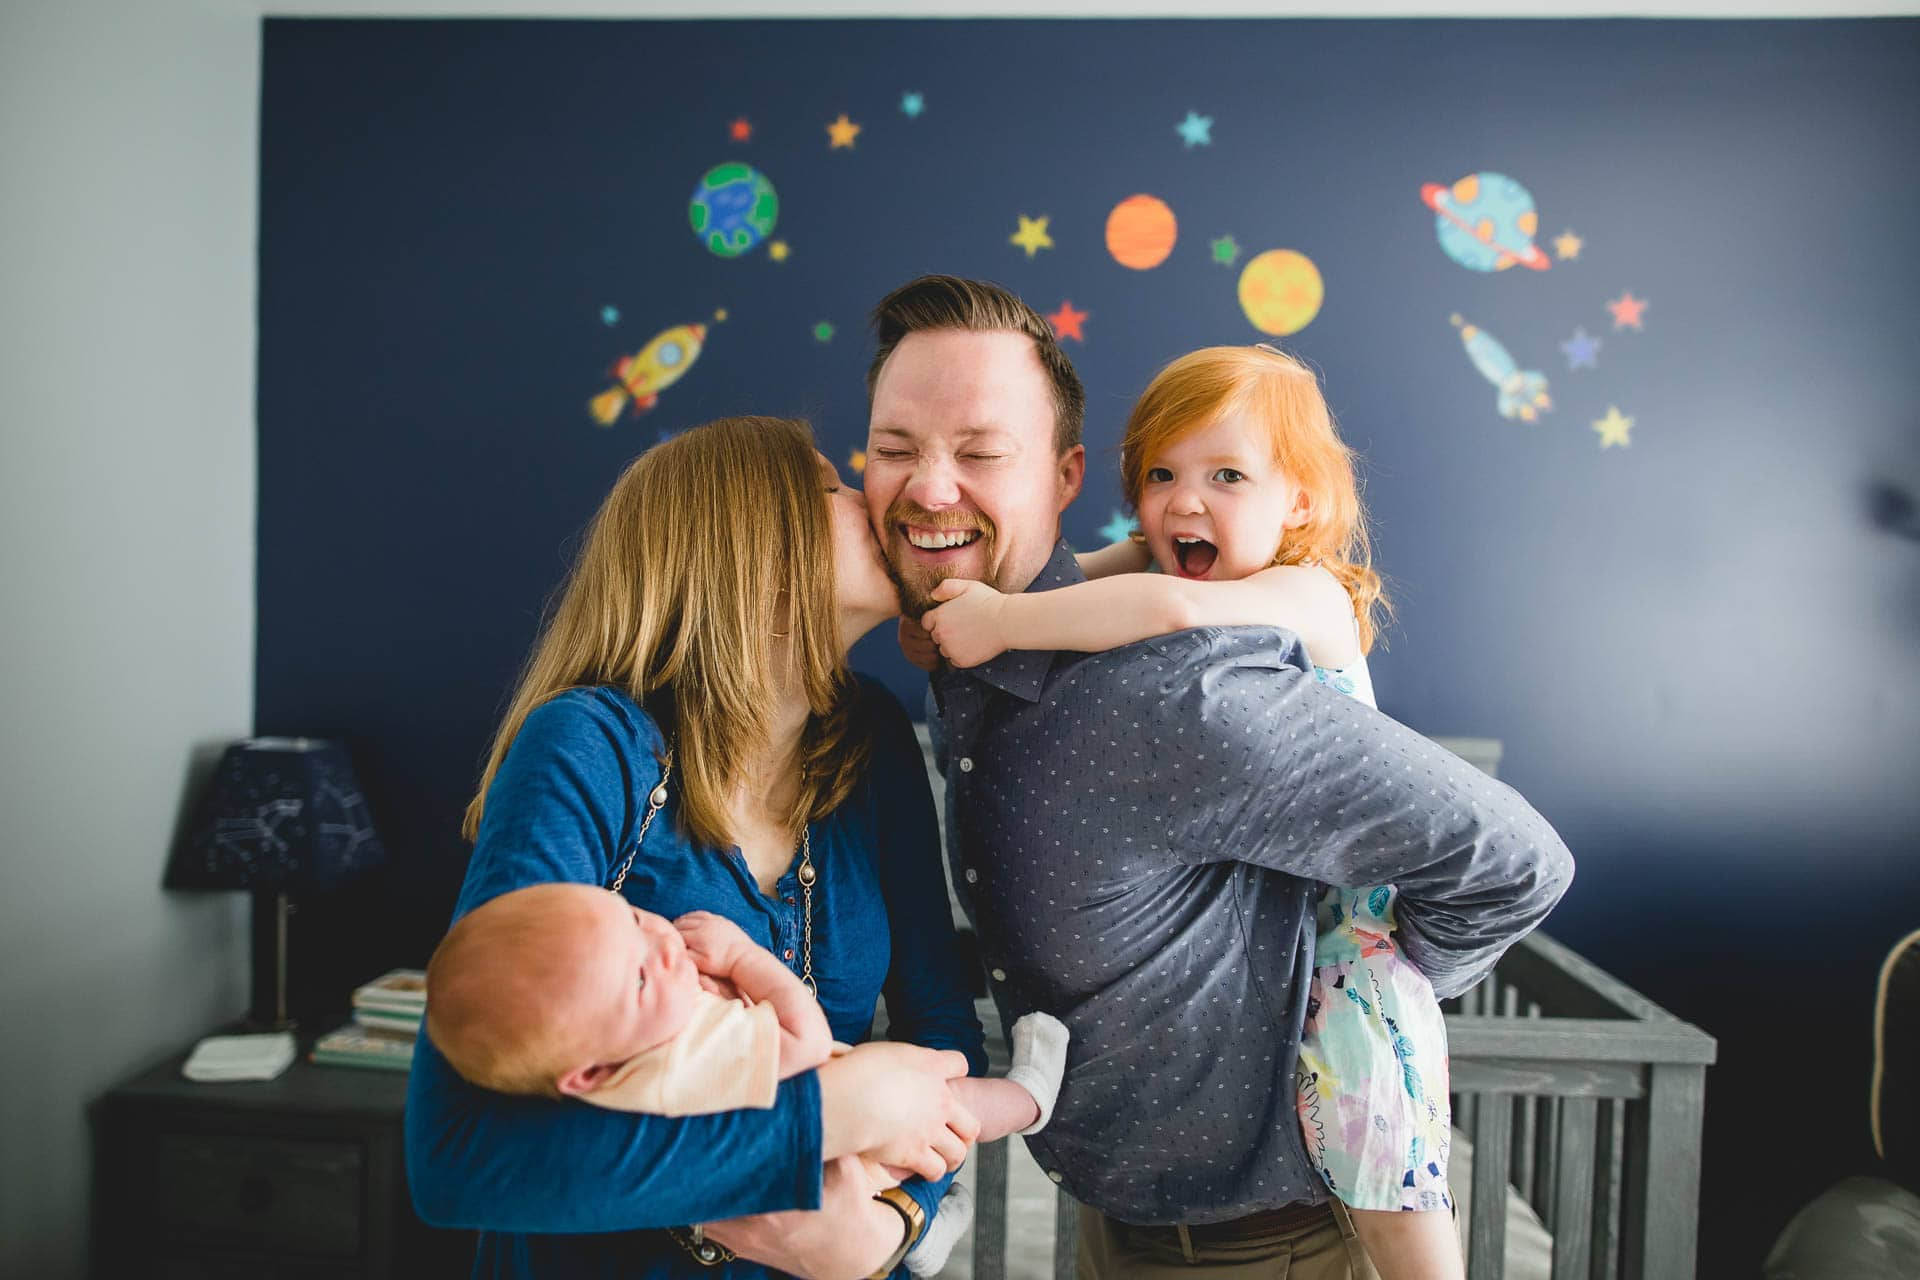 Mom and dad hold newborn baby with toddler daughter on shoulders in space themed nursery Philadelphia Lucy Baber Family Photography